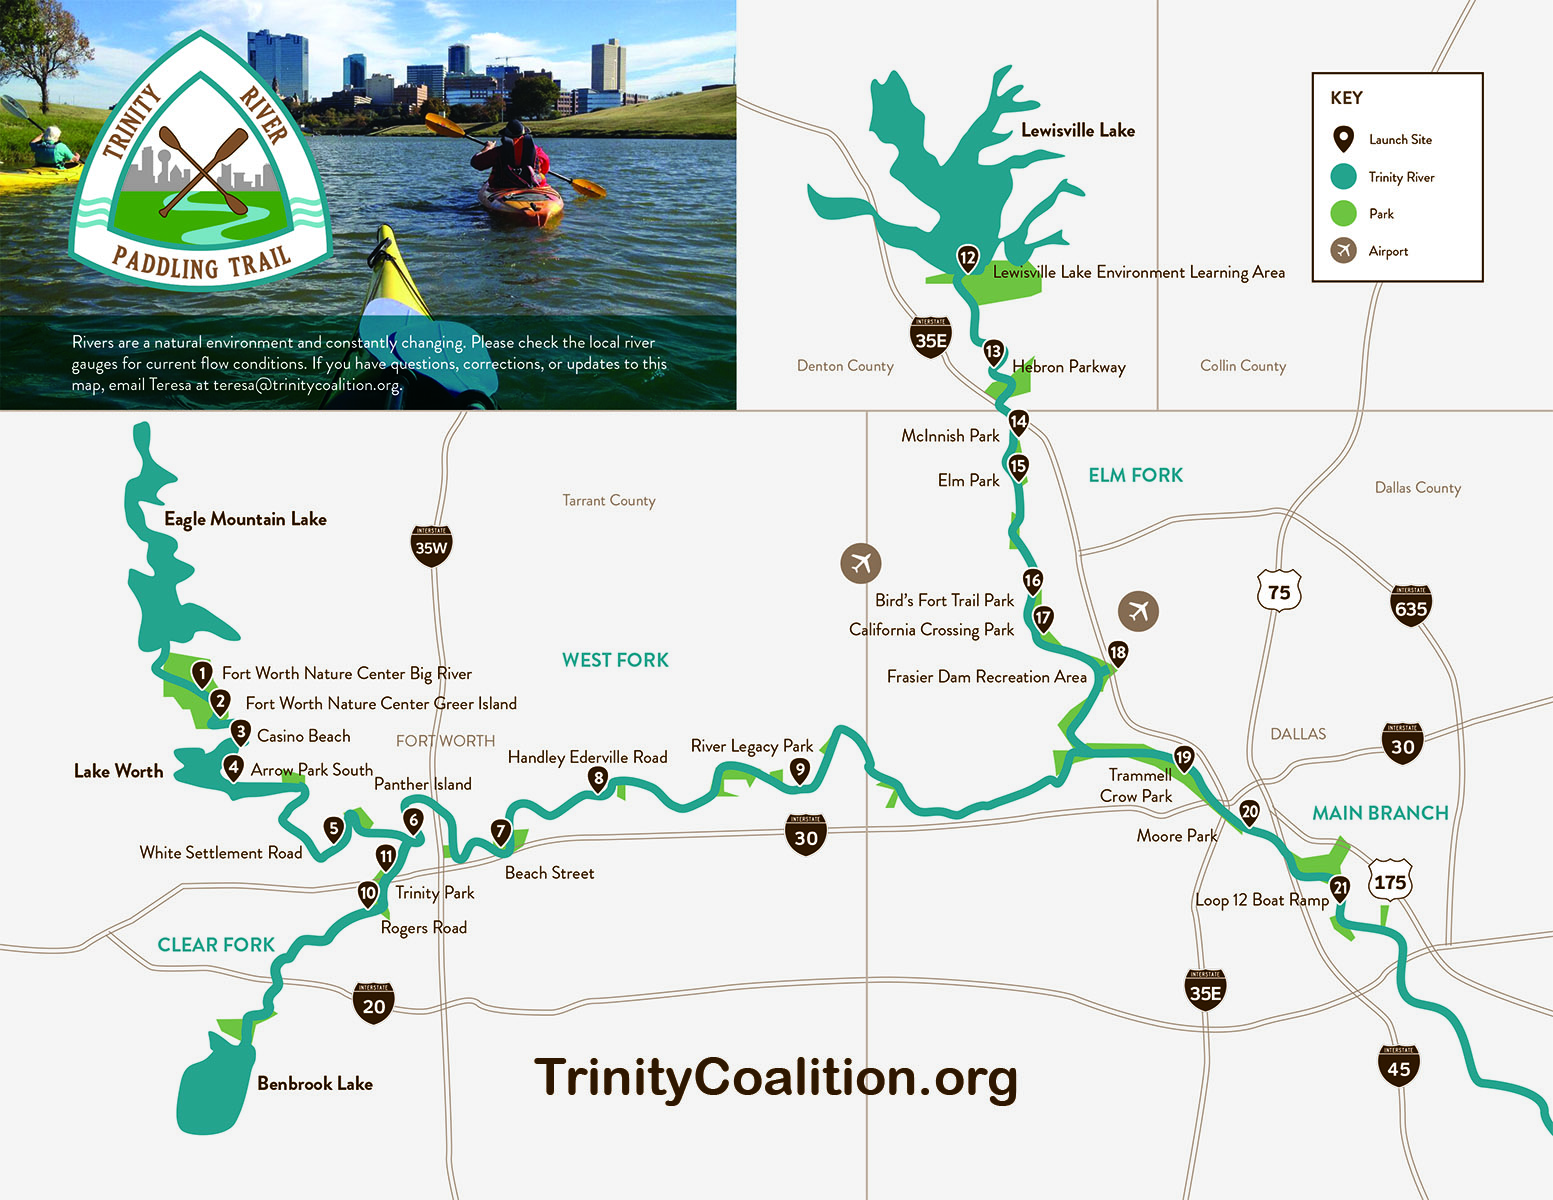 Discovery Event 2 hosted by REI: The Trinity River Paddle Trail